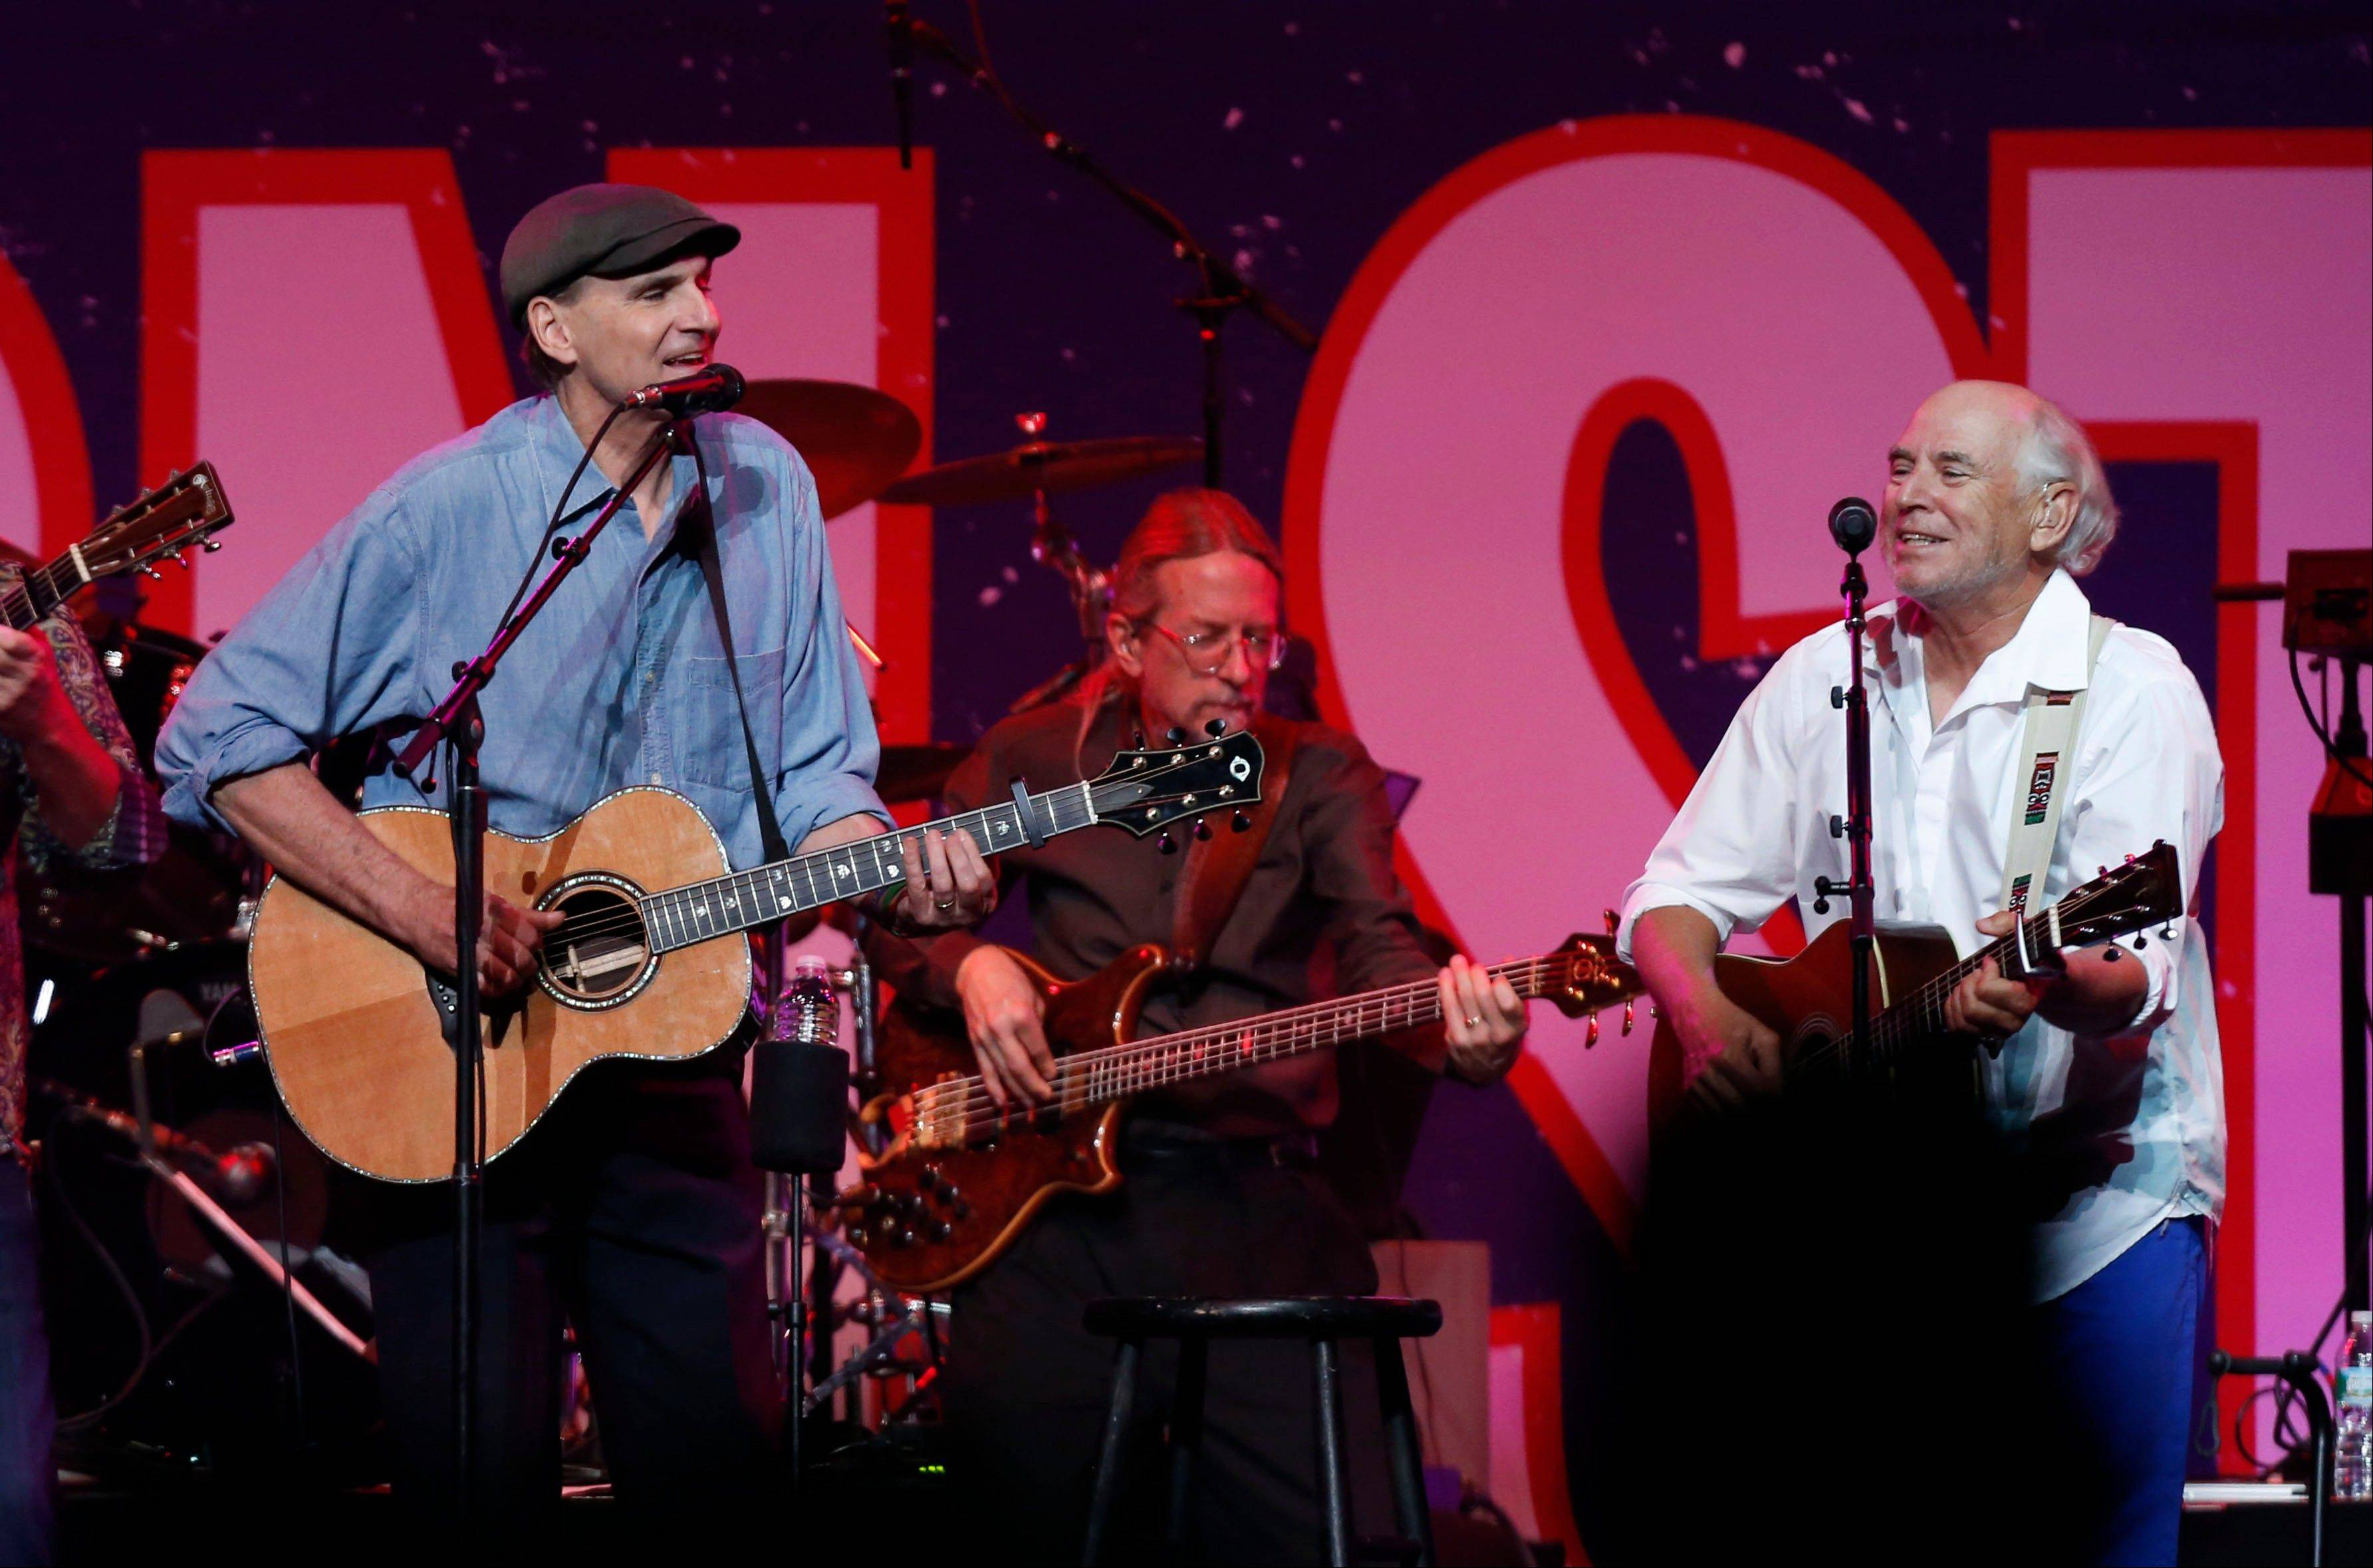 The Boston Strong Concert: An Evening of Support and Celebration brought out big names like James Taylor, left, and Jimmy Buffett, who performed at the benefit Thursday.